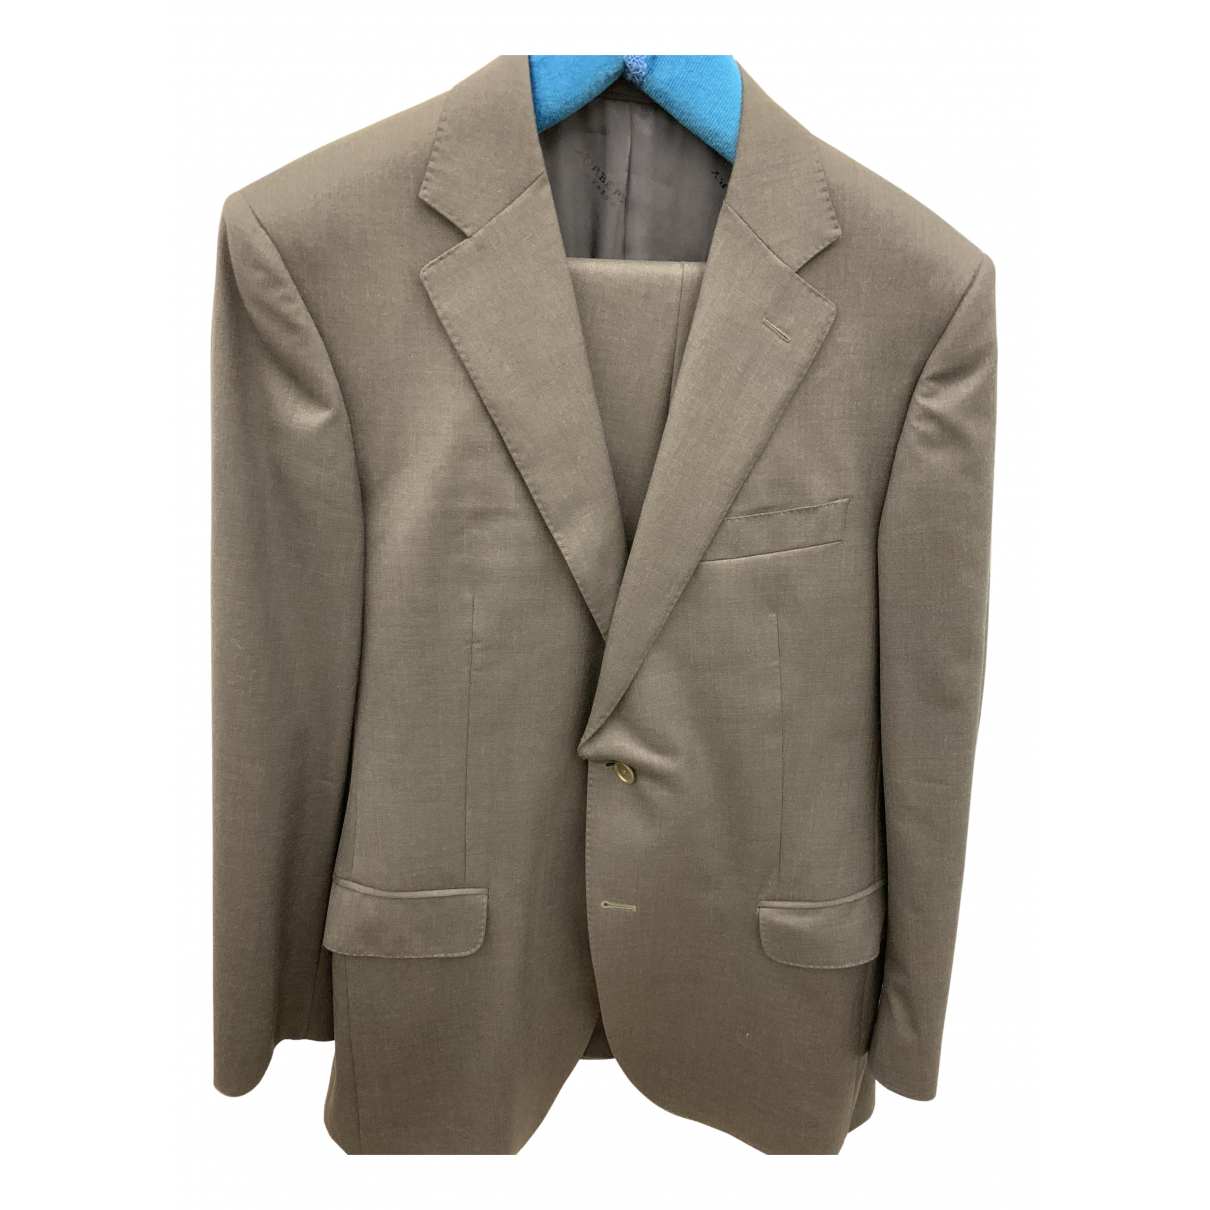 Burberry N Grey Wool Suits for Men 52 FR